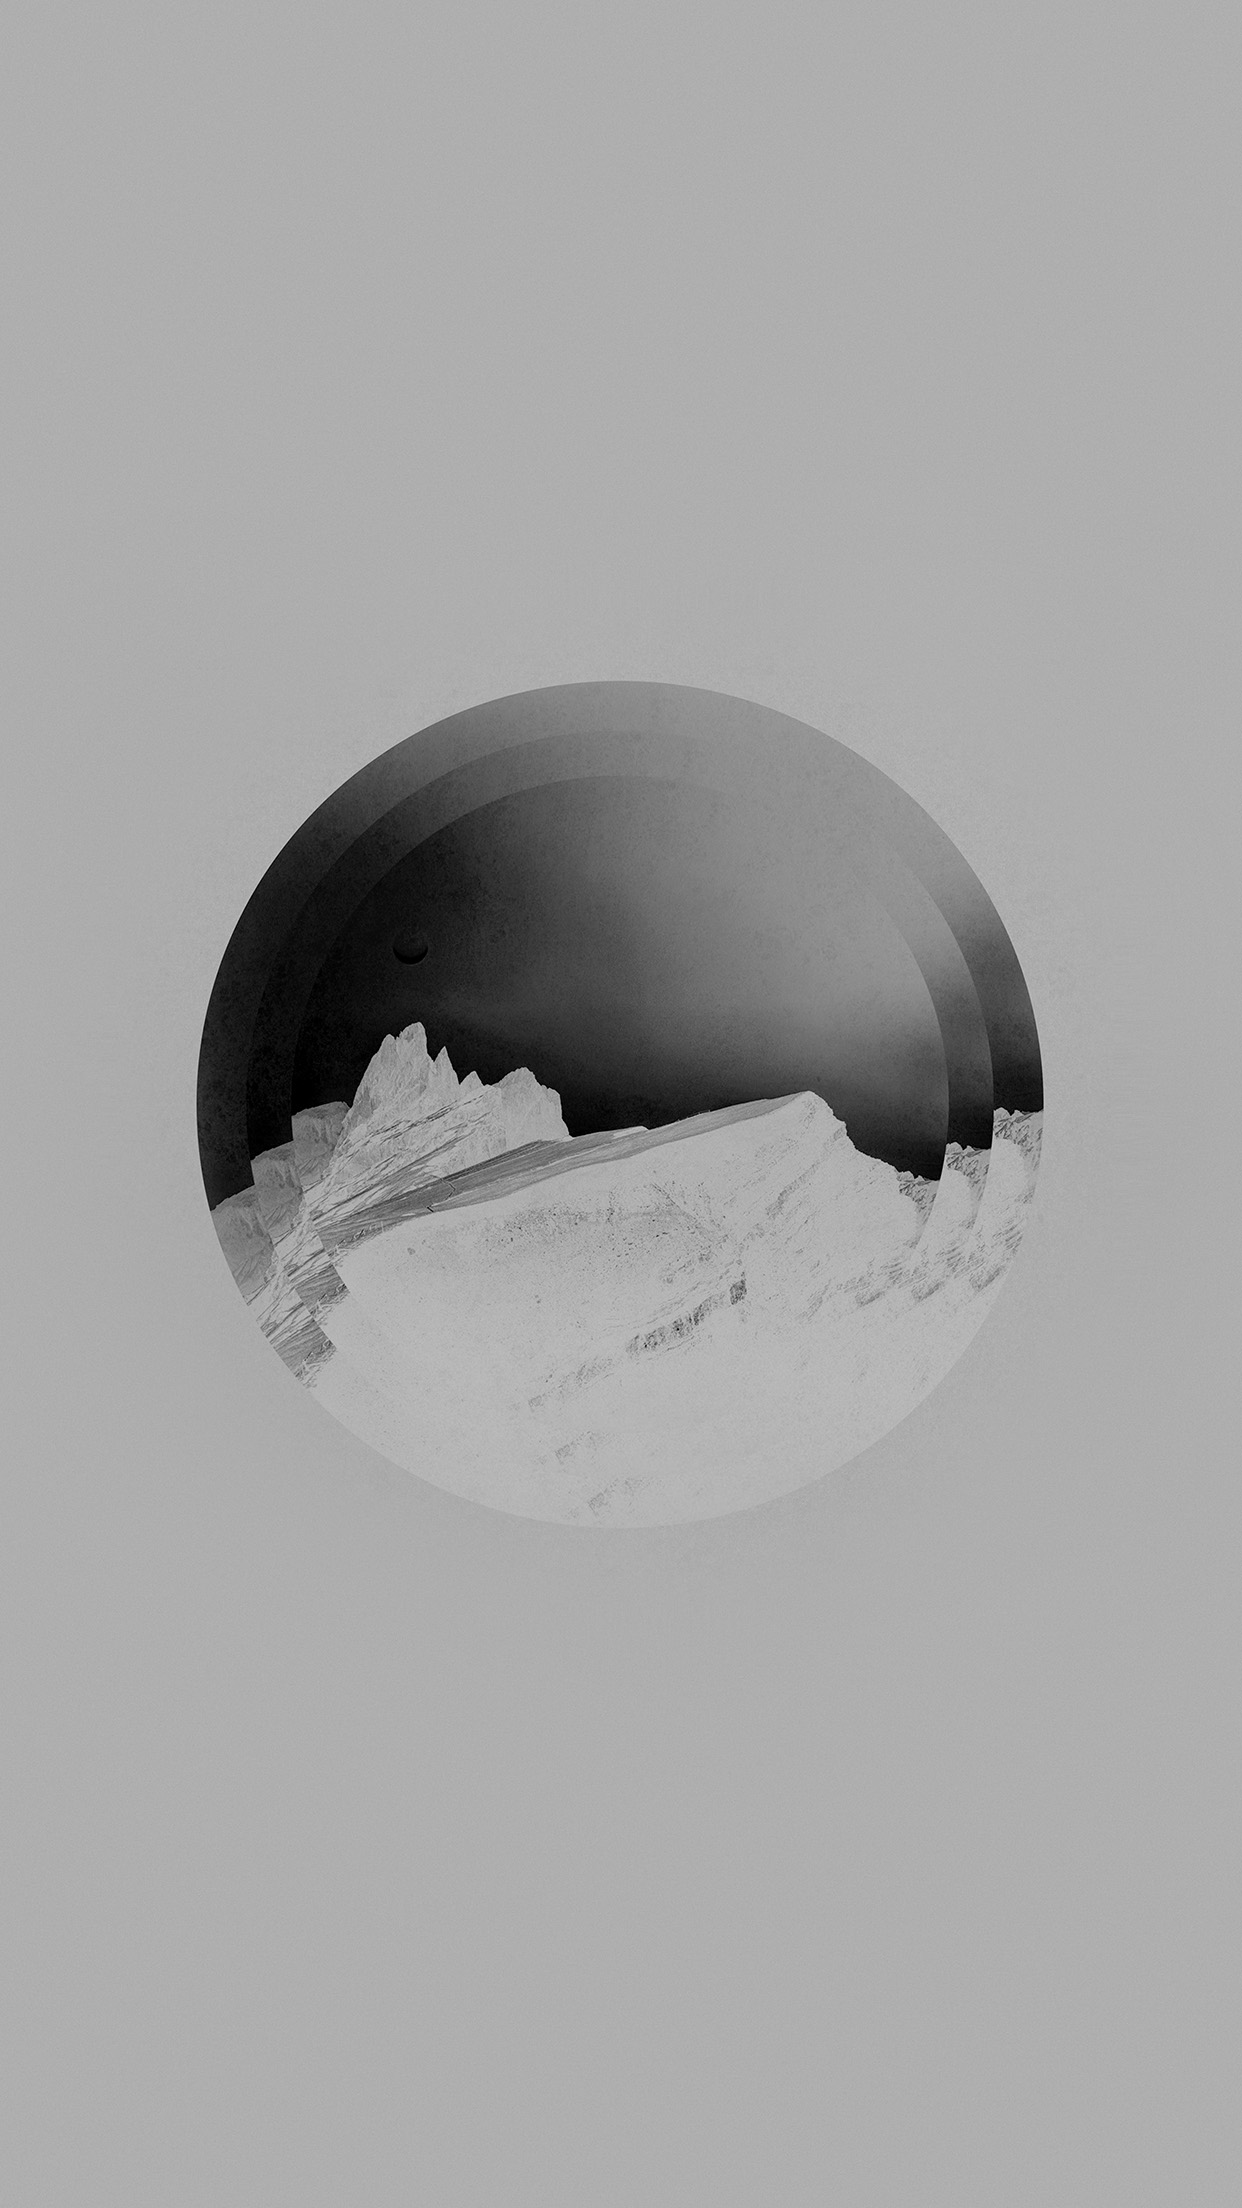 Am23 tycho art cover music minimal art white bw wallpaper for Minimal art video